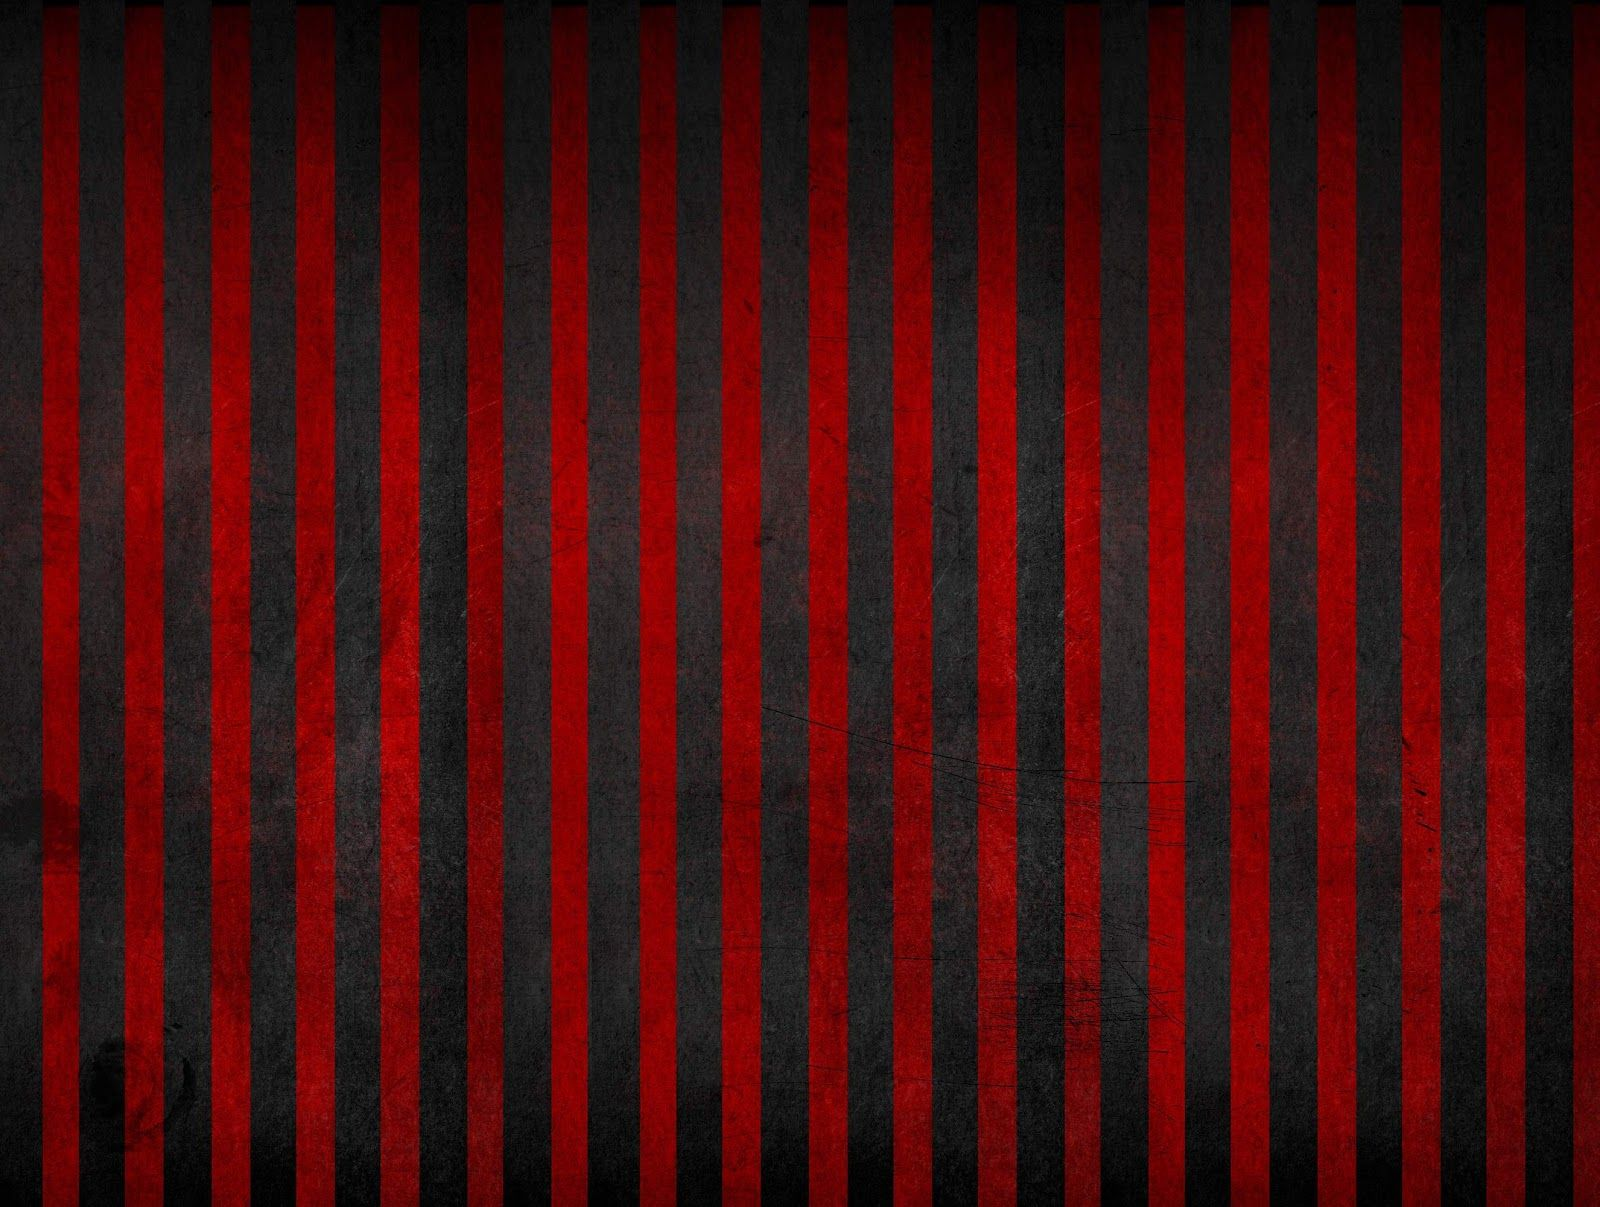 red-and-black-striped-wallpaper